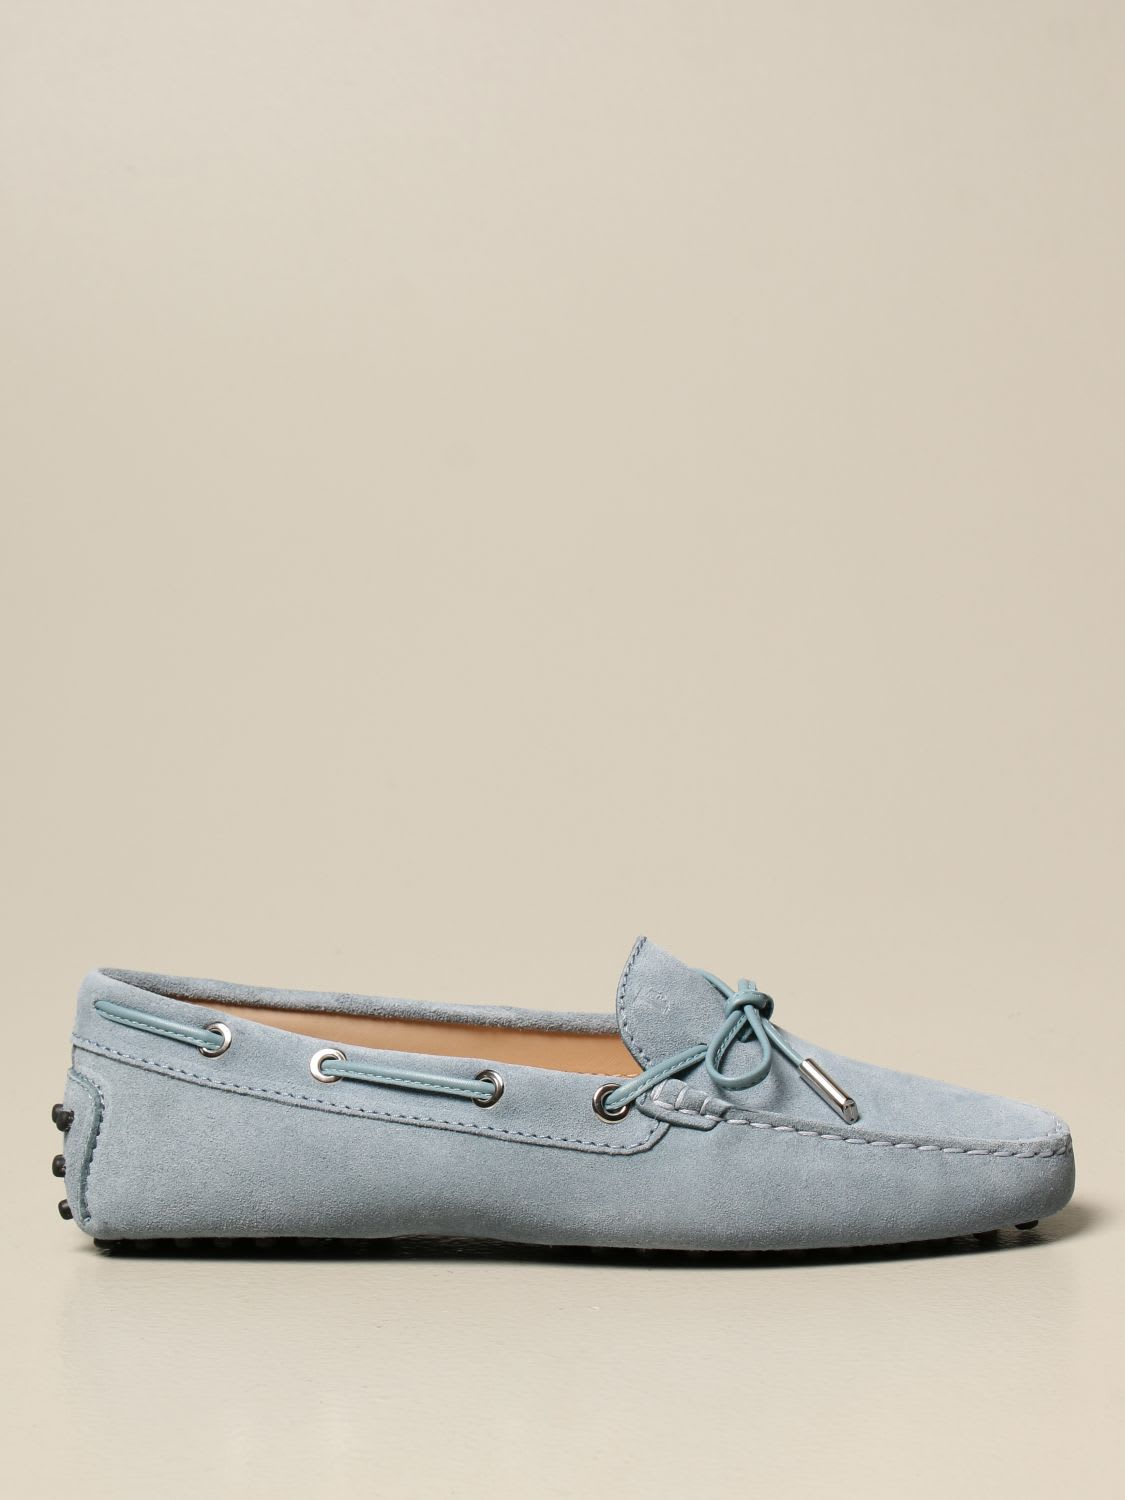 Tods Loafers Tods Suede Loafers